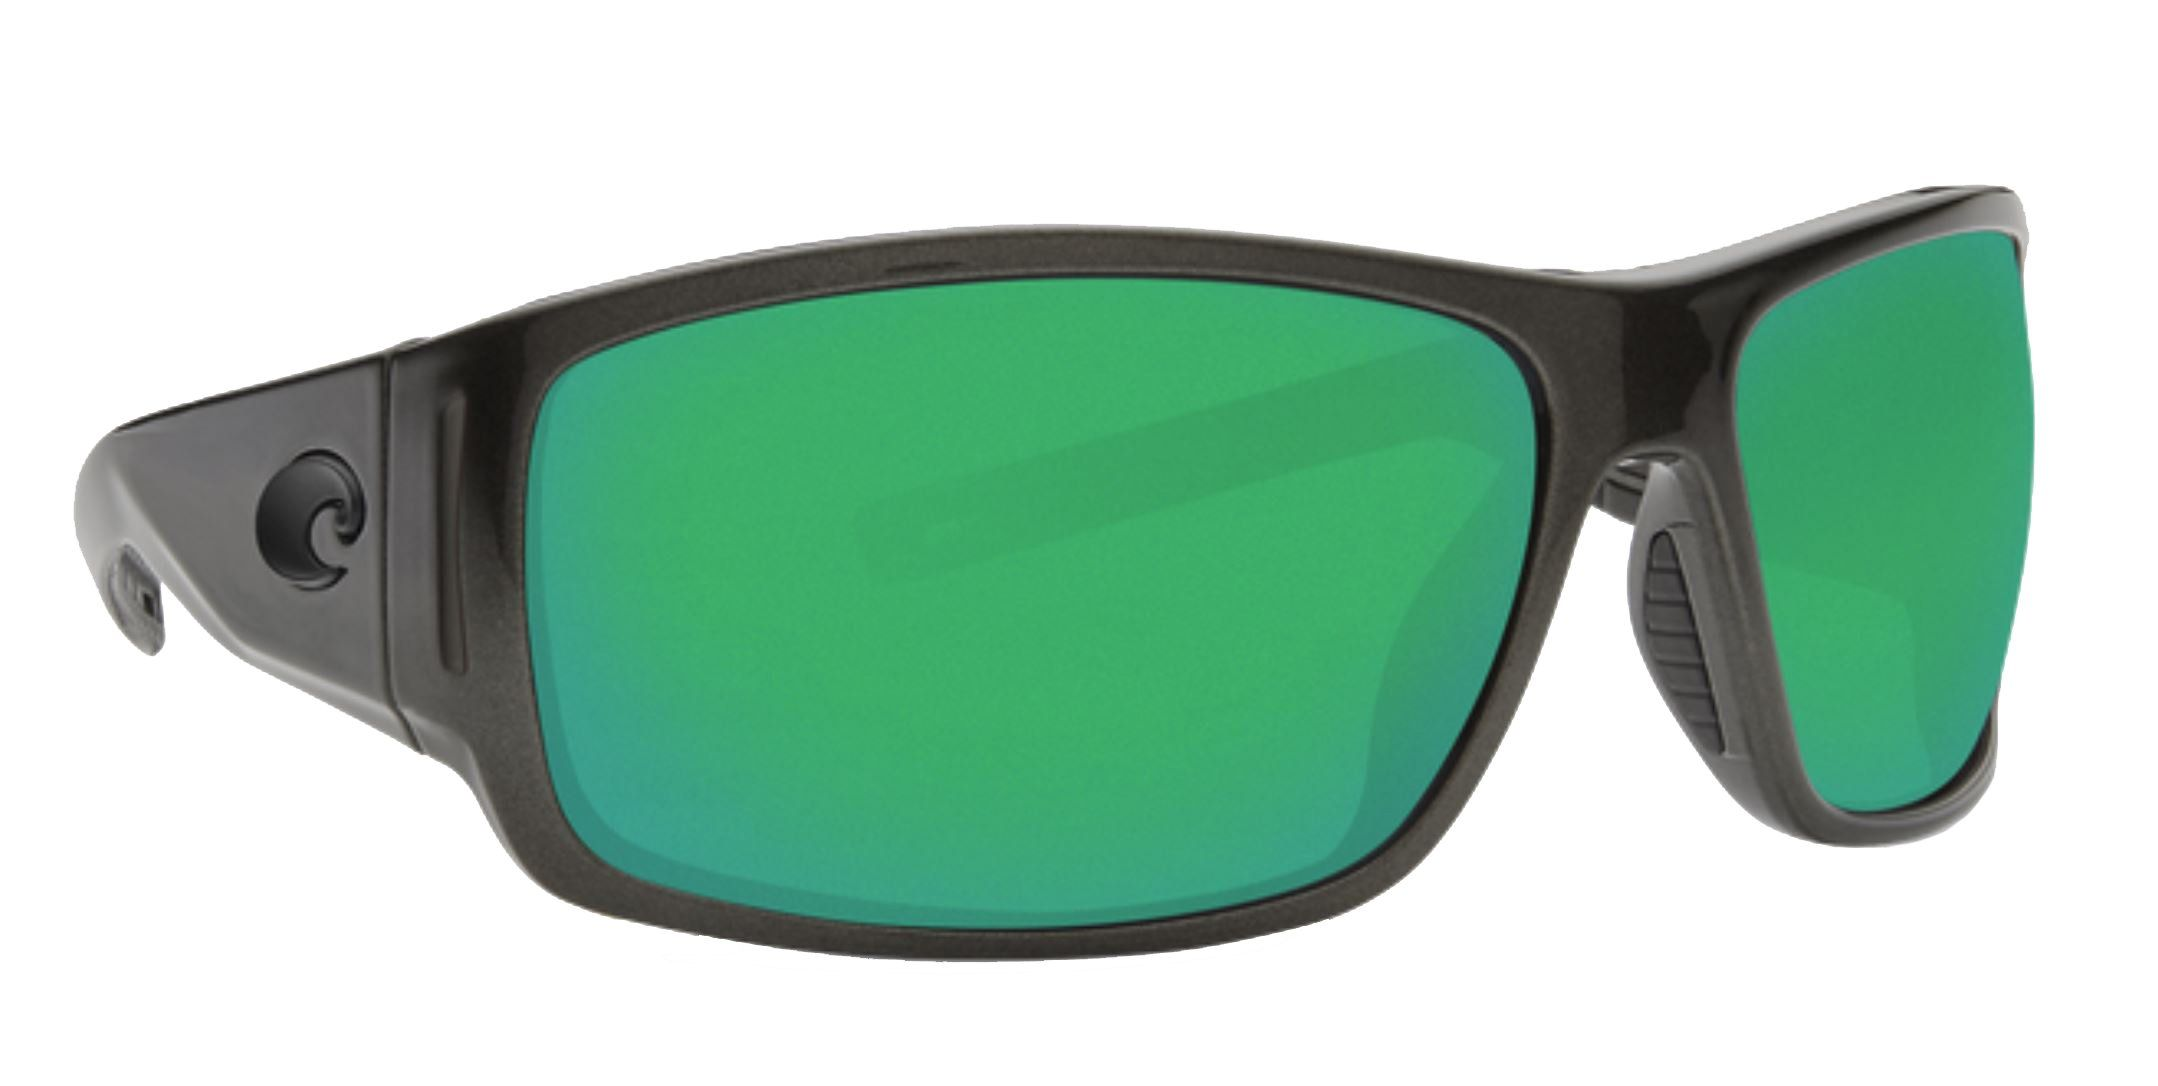 7164f67d1 Costa Del Mar Cape Sunglasses Shiny Steel Gray Metallic Frame Green Mirror  580P Plastic Lens * To view further for this item, visit the image link.